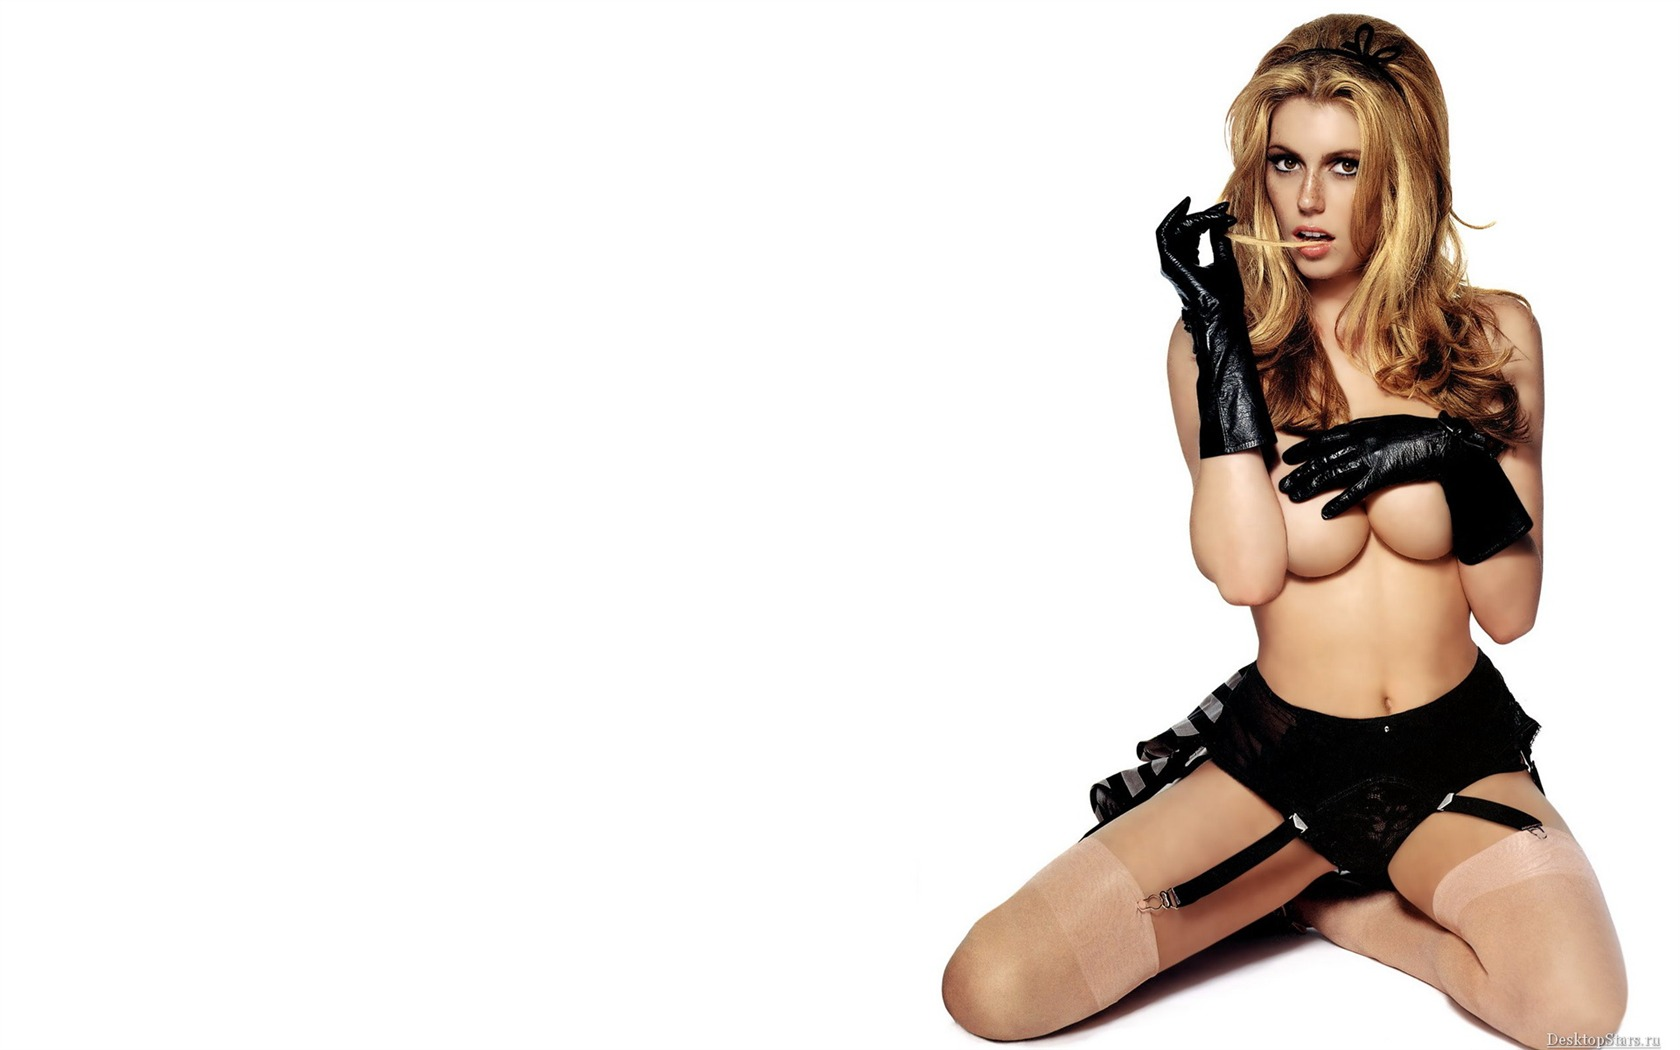 Diora Baird #008 - 1680x1050 Wallpapers Pictures Photos Images